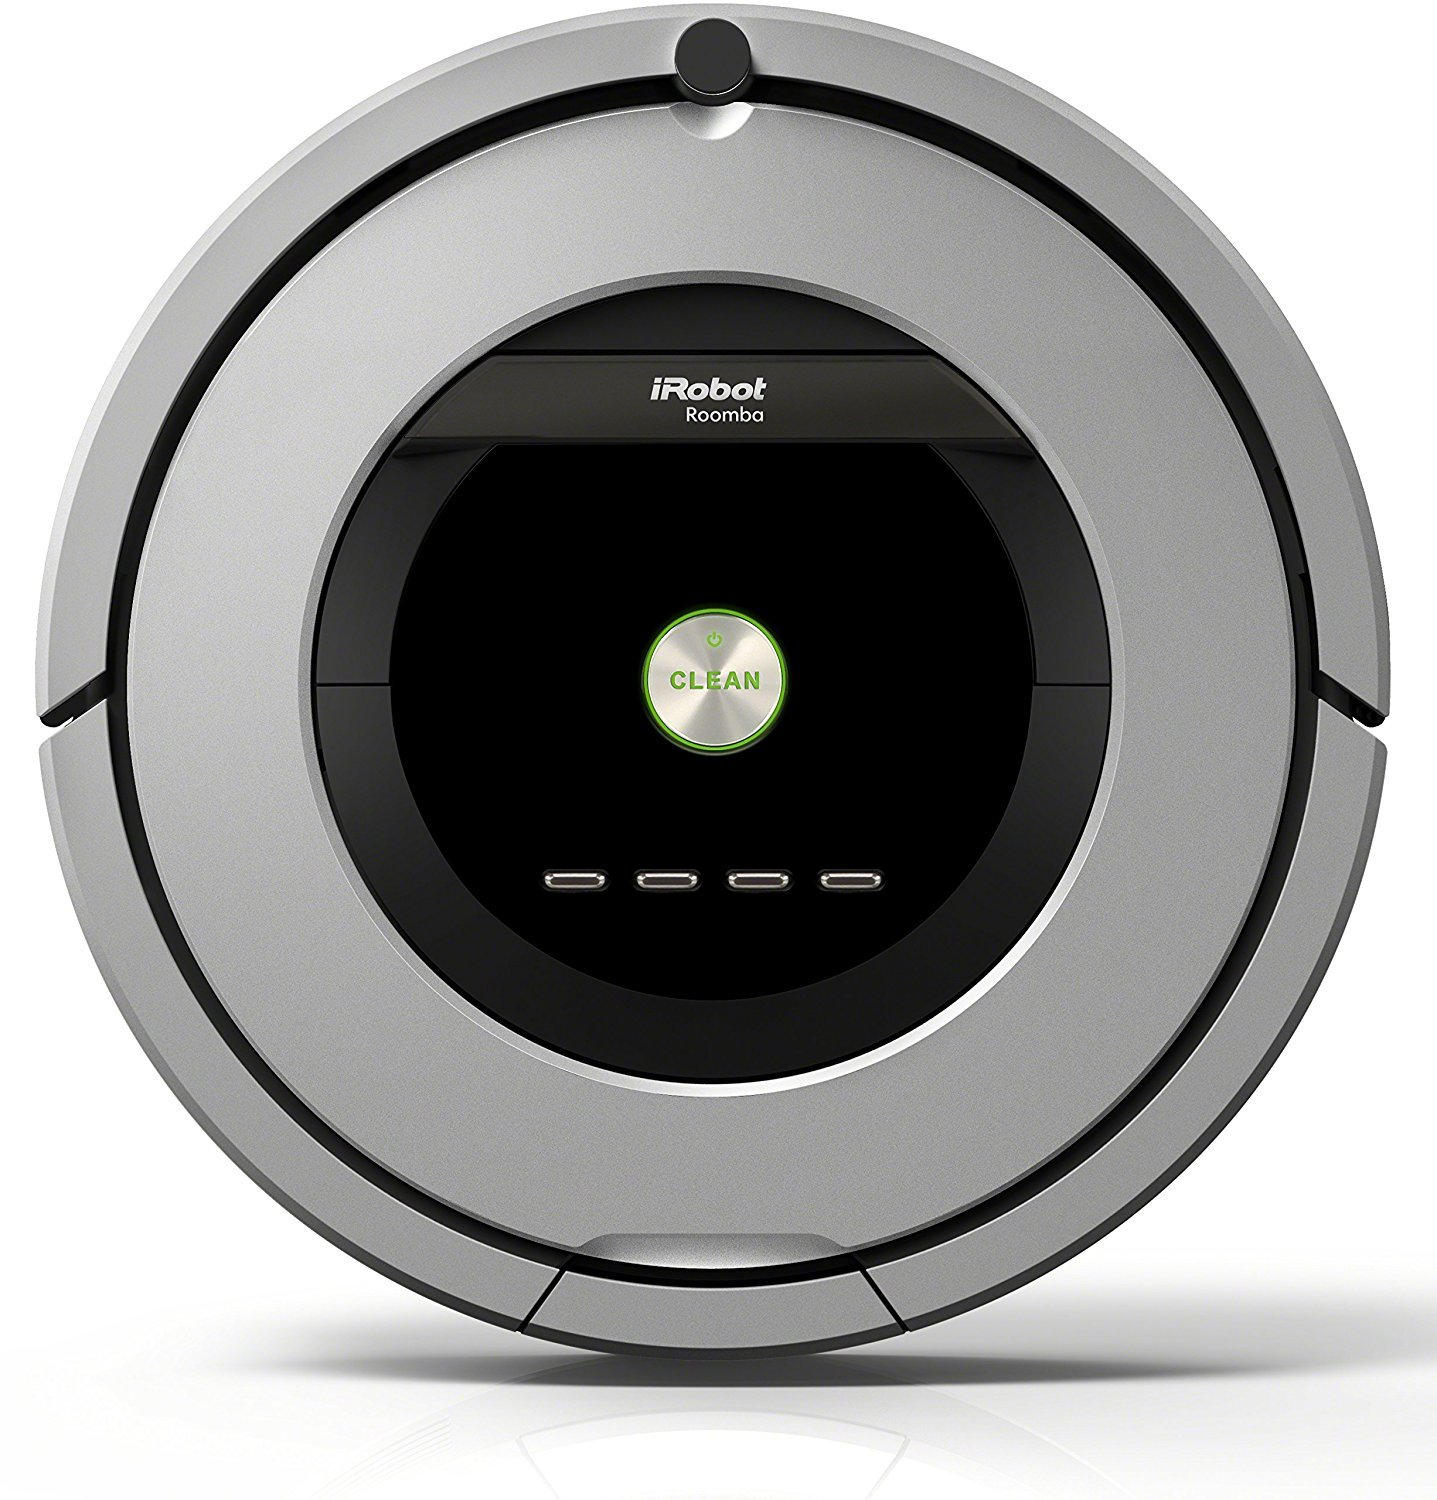 irobot roomba 886 staubsauger roboter tests infos 2018. Black Bedroom Furniture Sets. Home Design Ideas